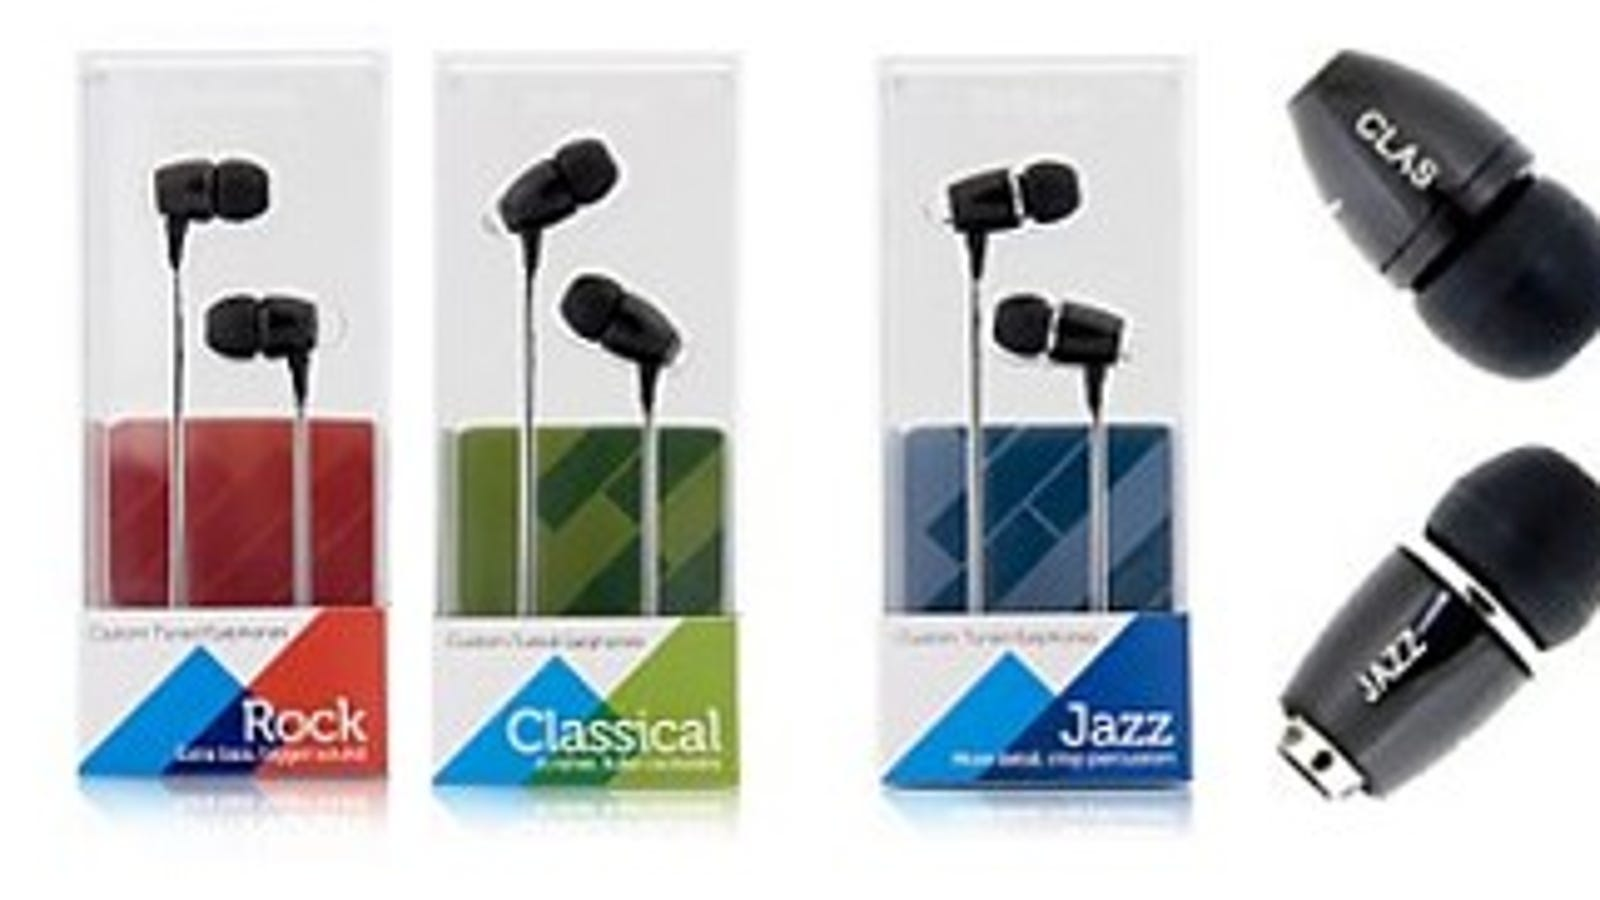 earbuds for girls cheap - Typecast Yourself with Radiopaq Custom-Tuned Earbuds: Emos Not Allowed